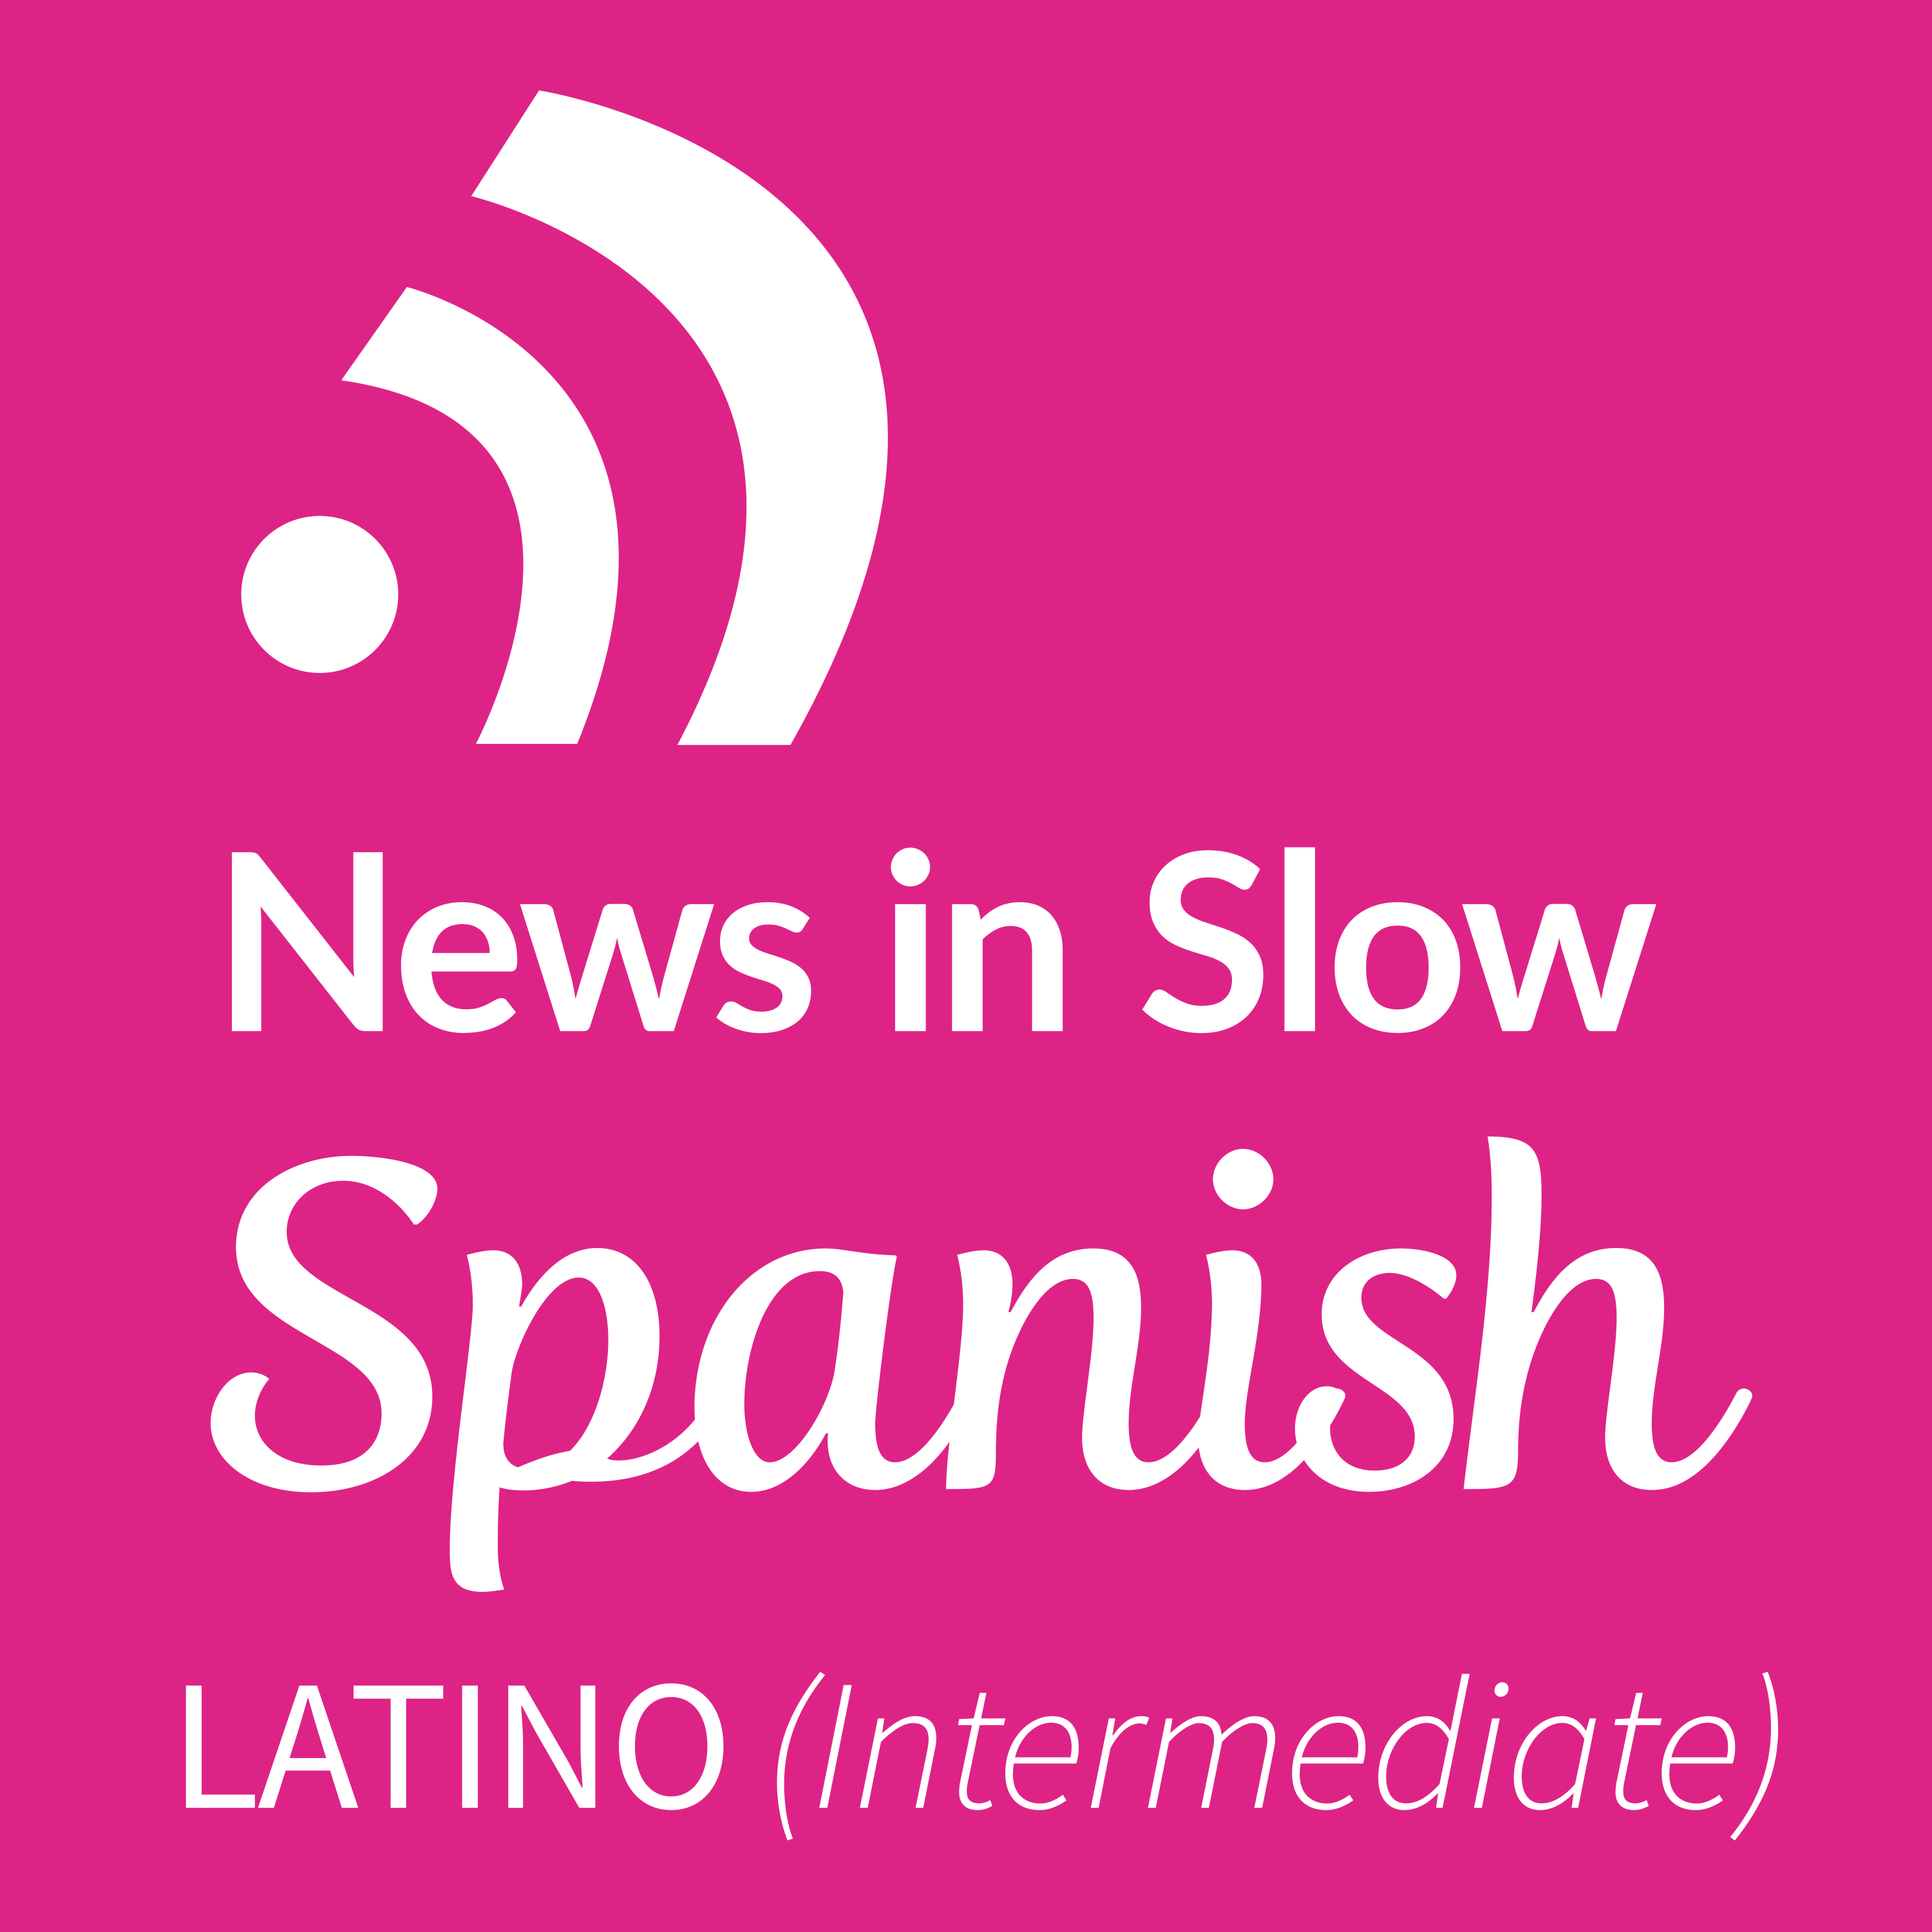 News in Slow Spanish Latino - # 149 - Spanish grammar, news and expressions